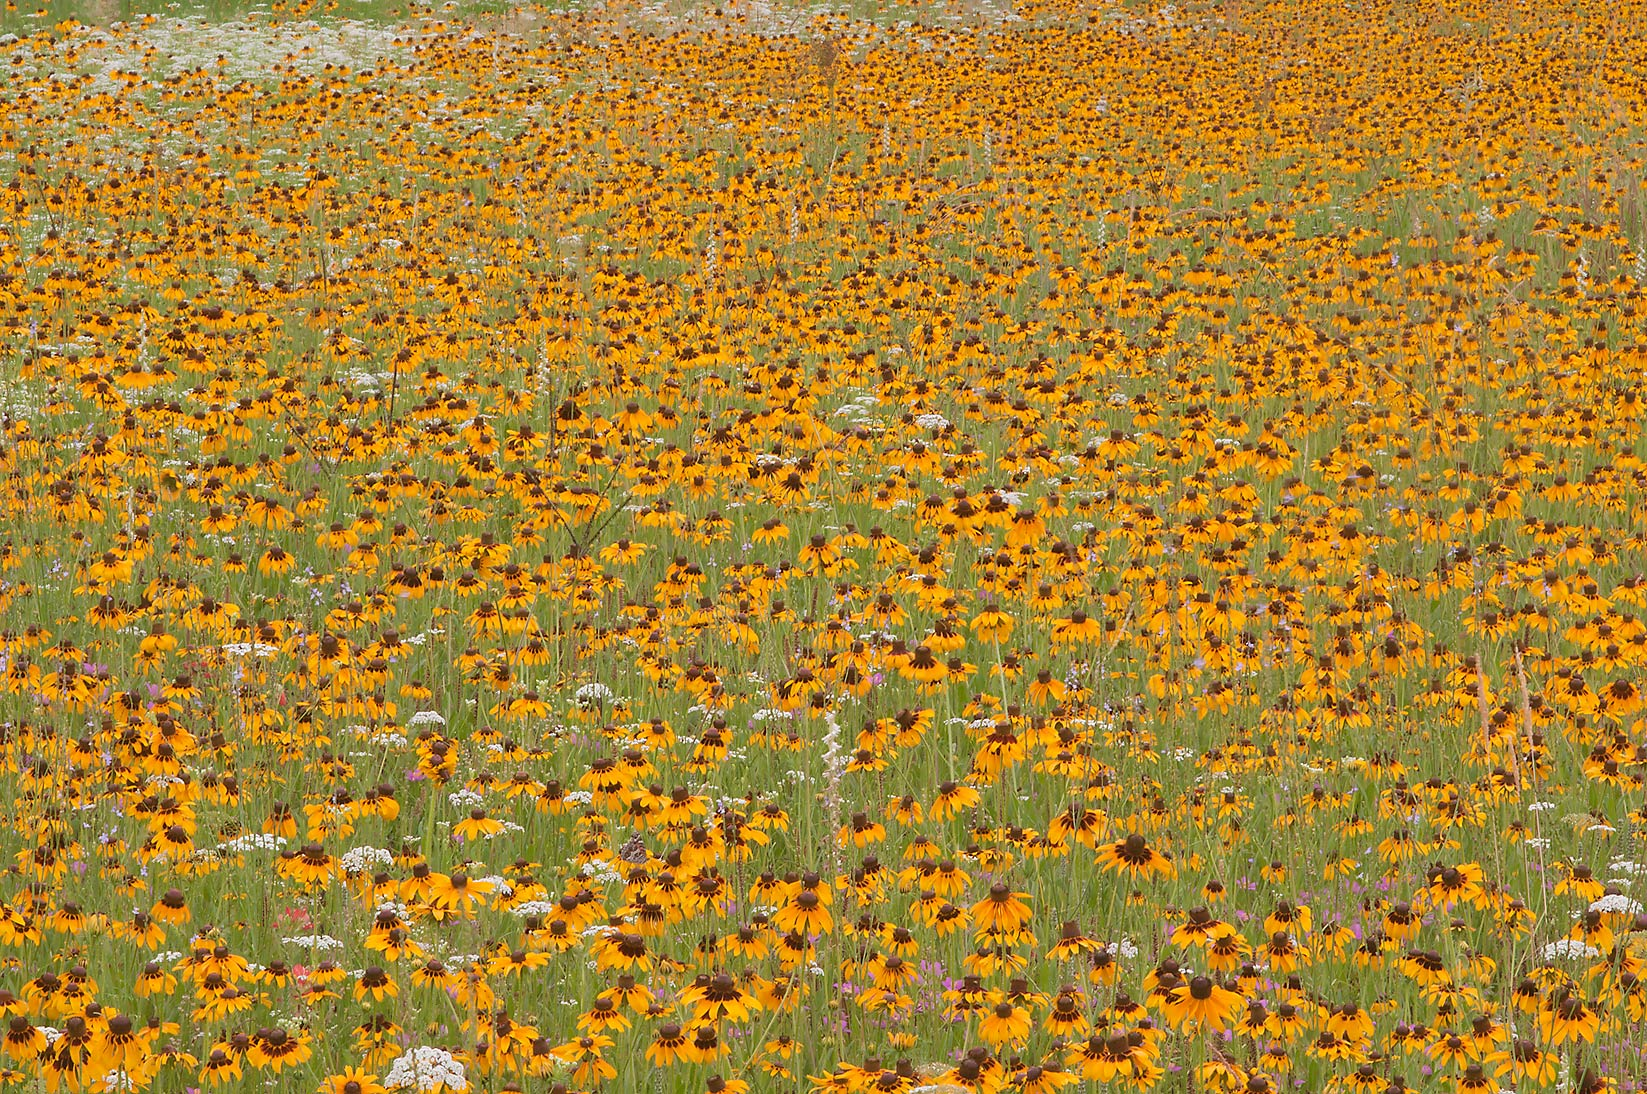 Dense field of yellow flowers near equestrian...Creek Park. College Station, Texas